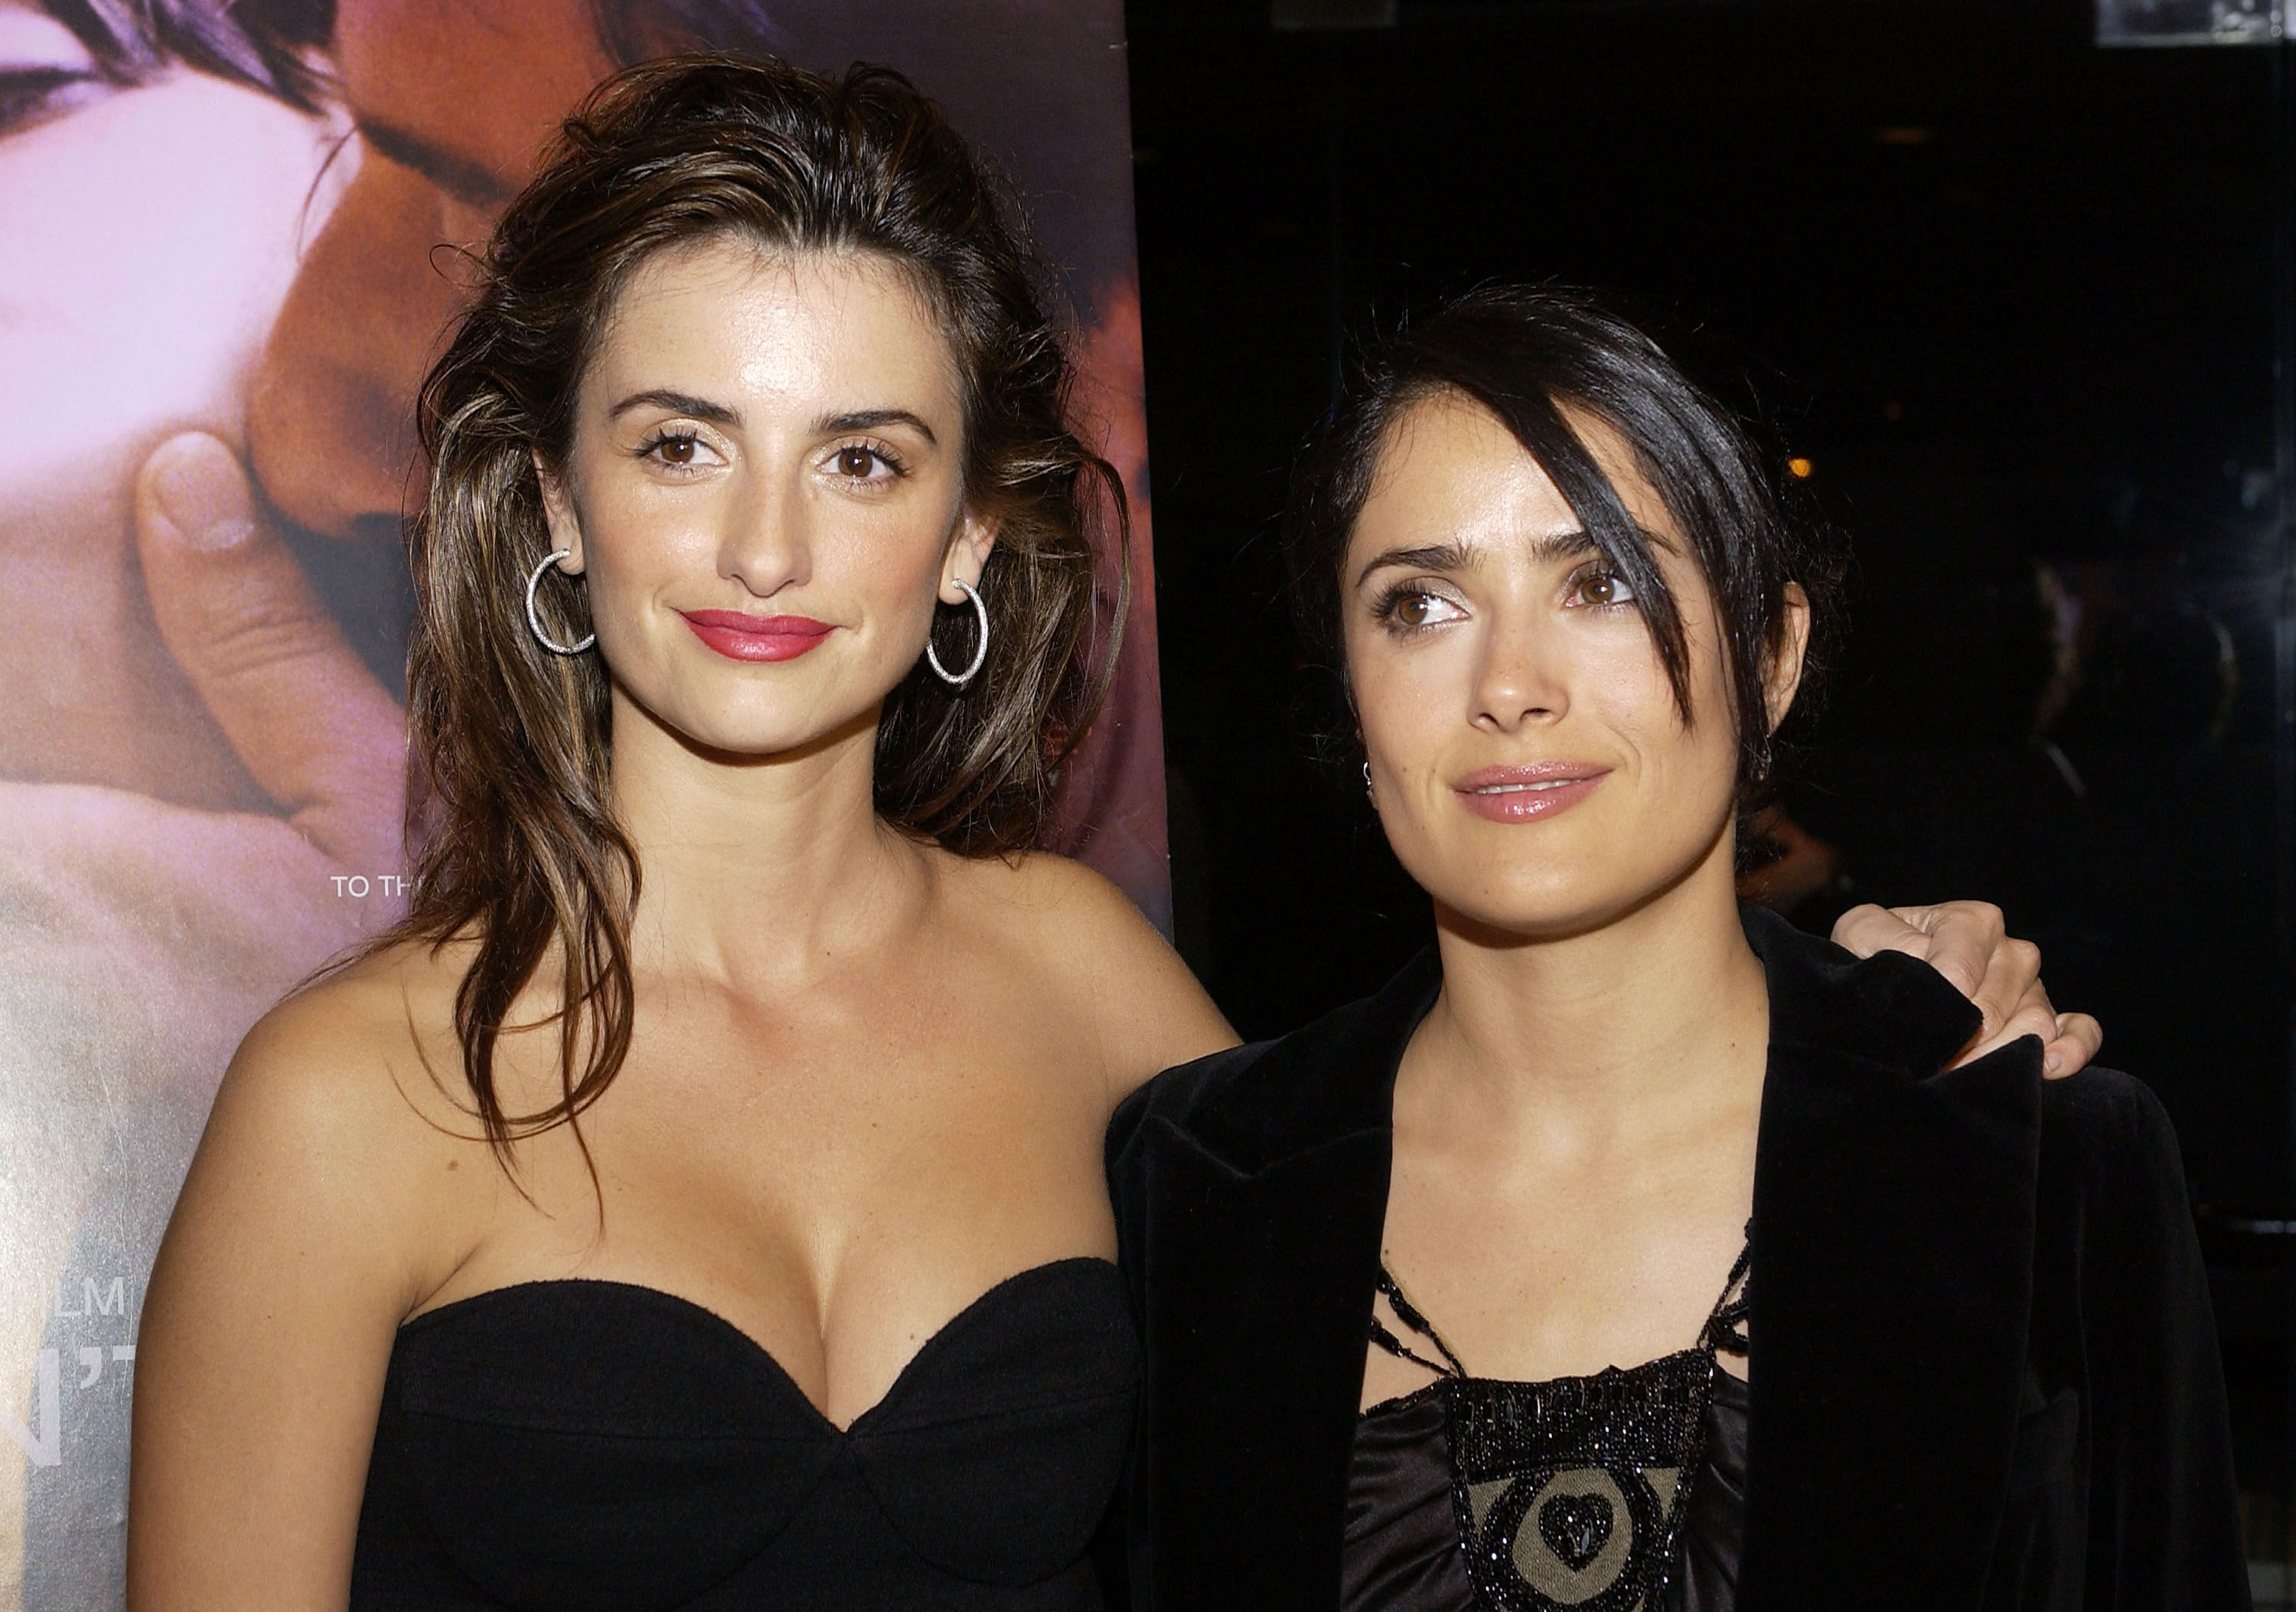 """Penelope Cruz and Salma Hayek at a screening of """"Don't Move"""" on March 13, 2005 